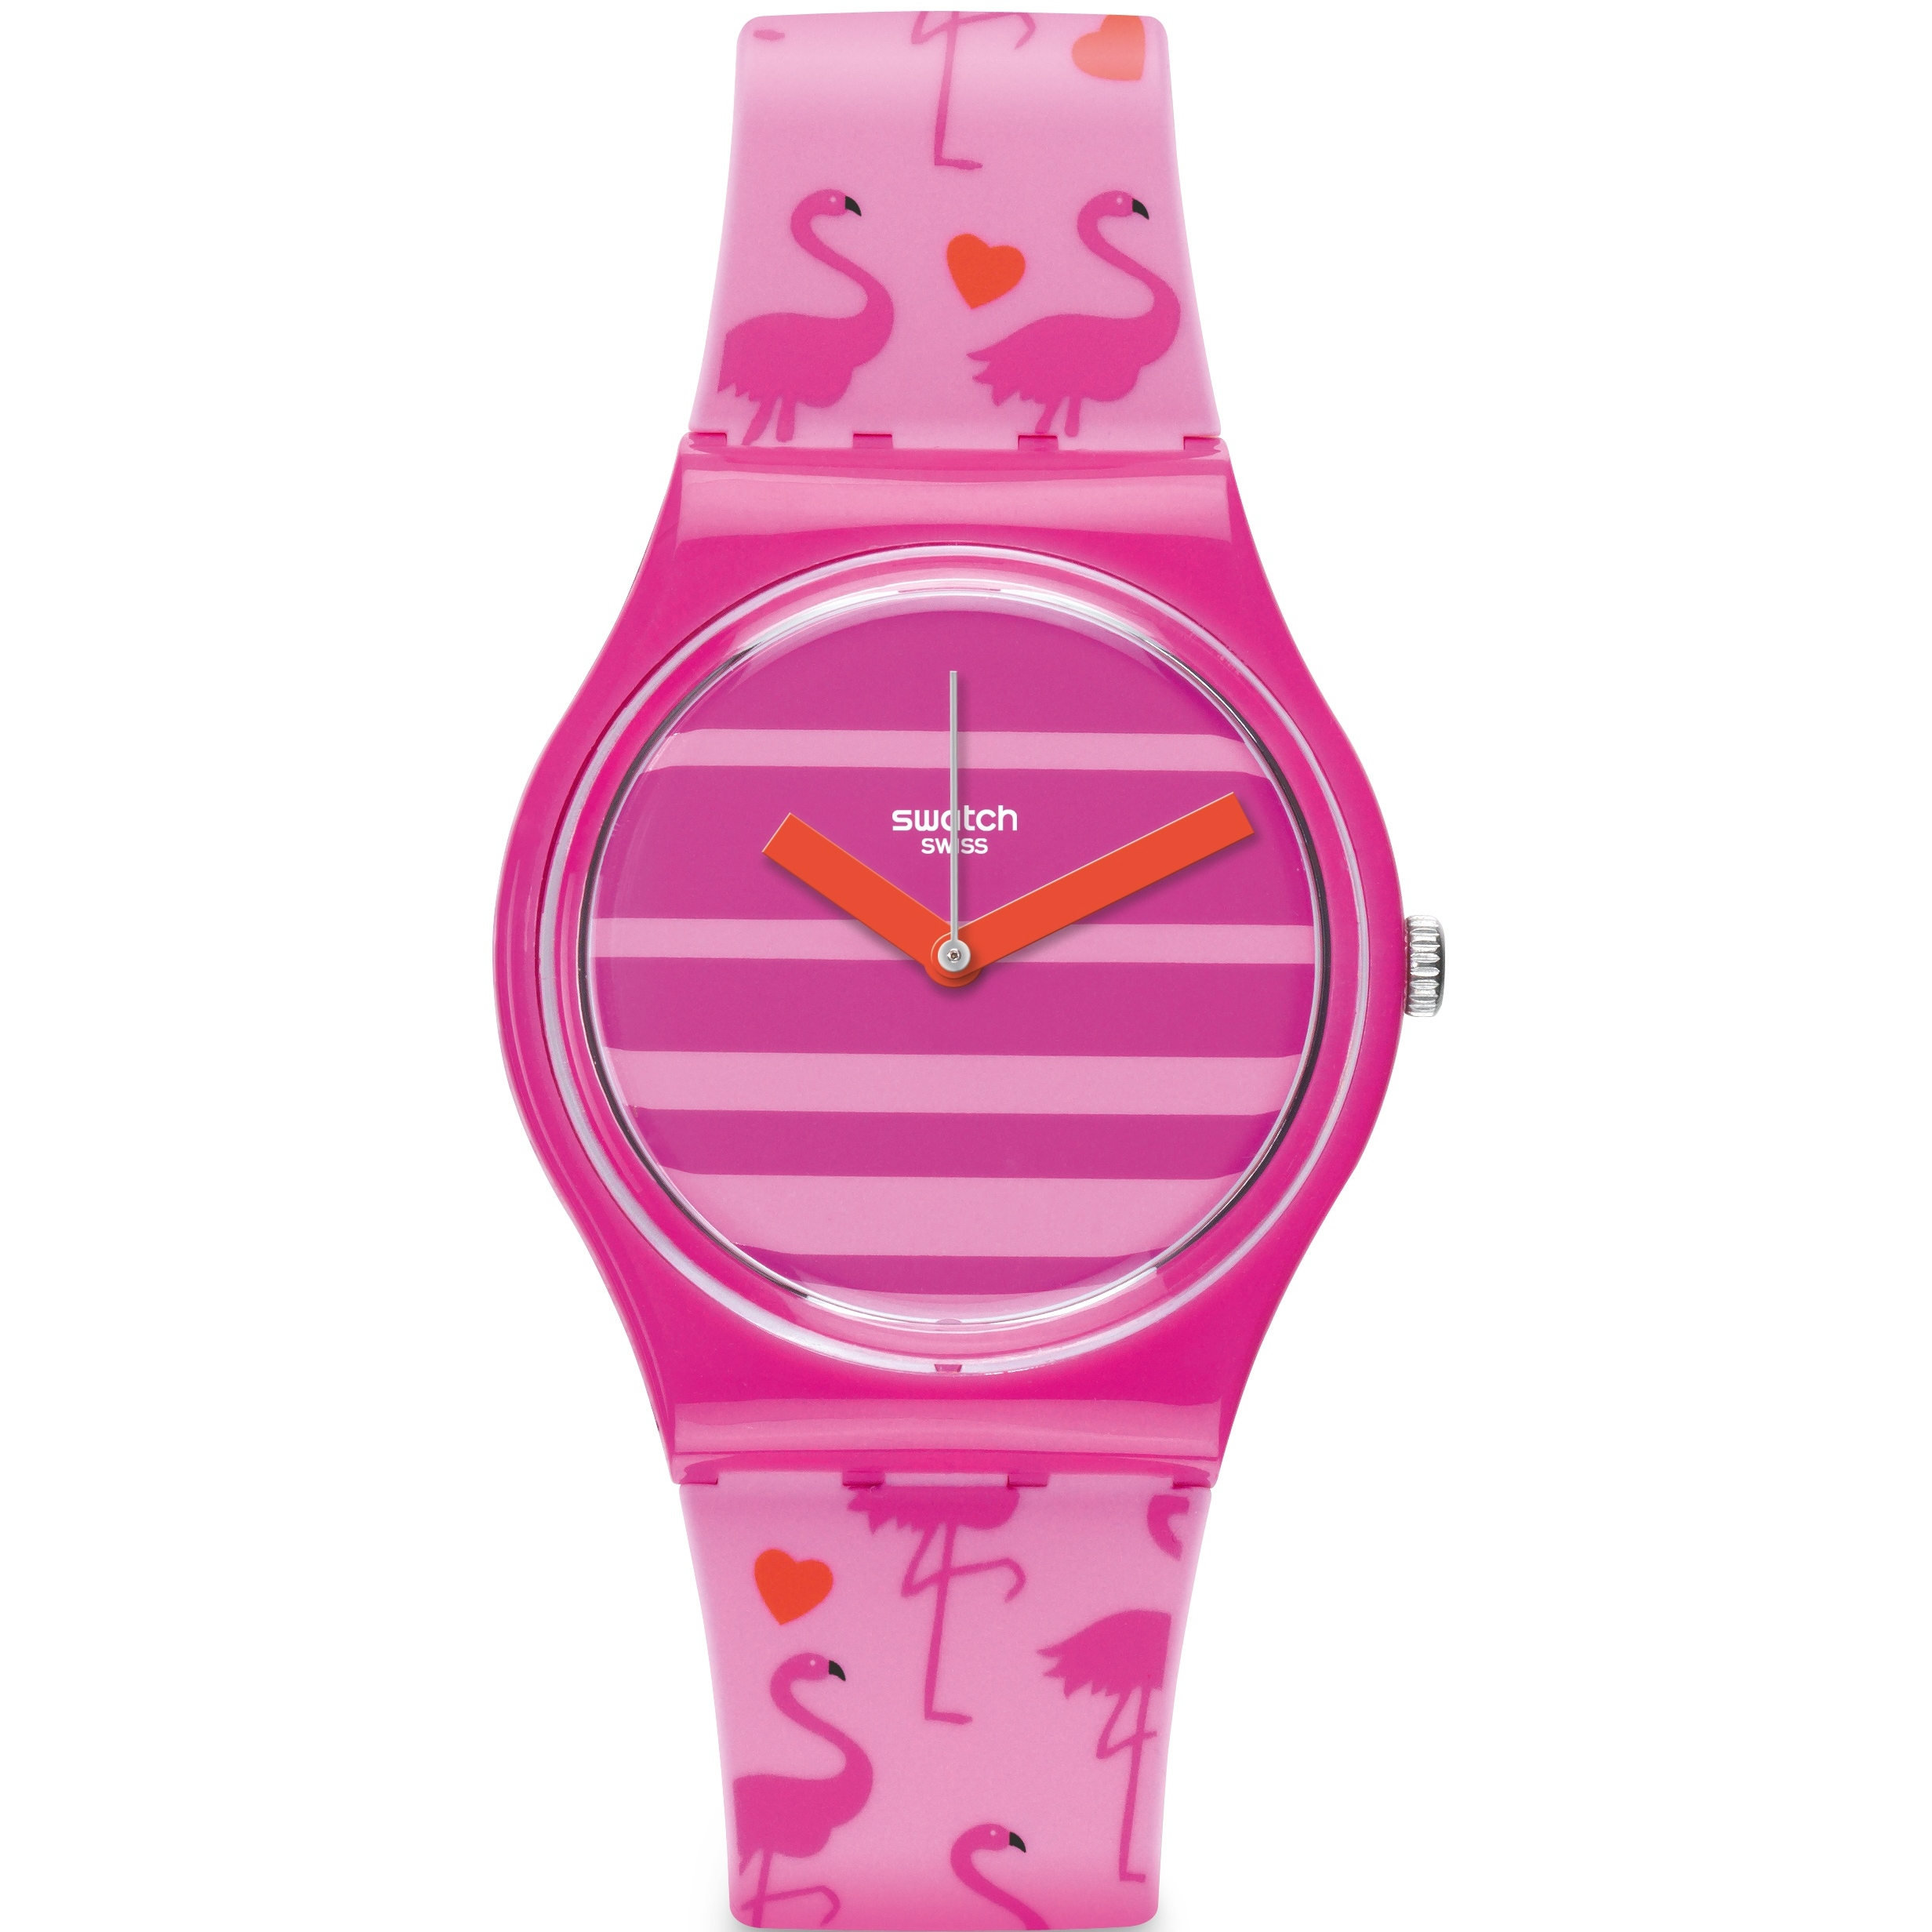 gold piece watches peach original products time watch kinis midnight image kulani rose classic